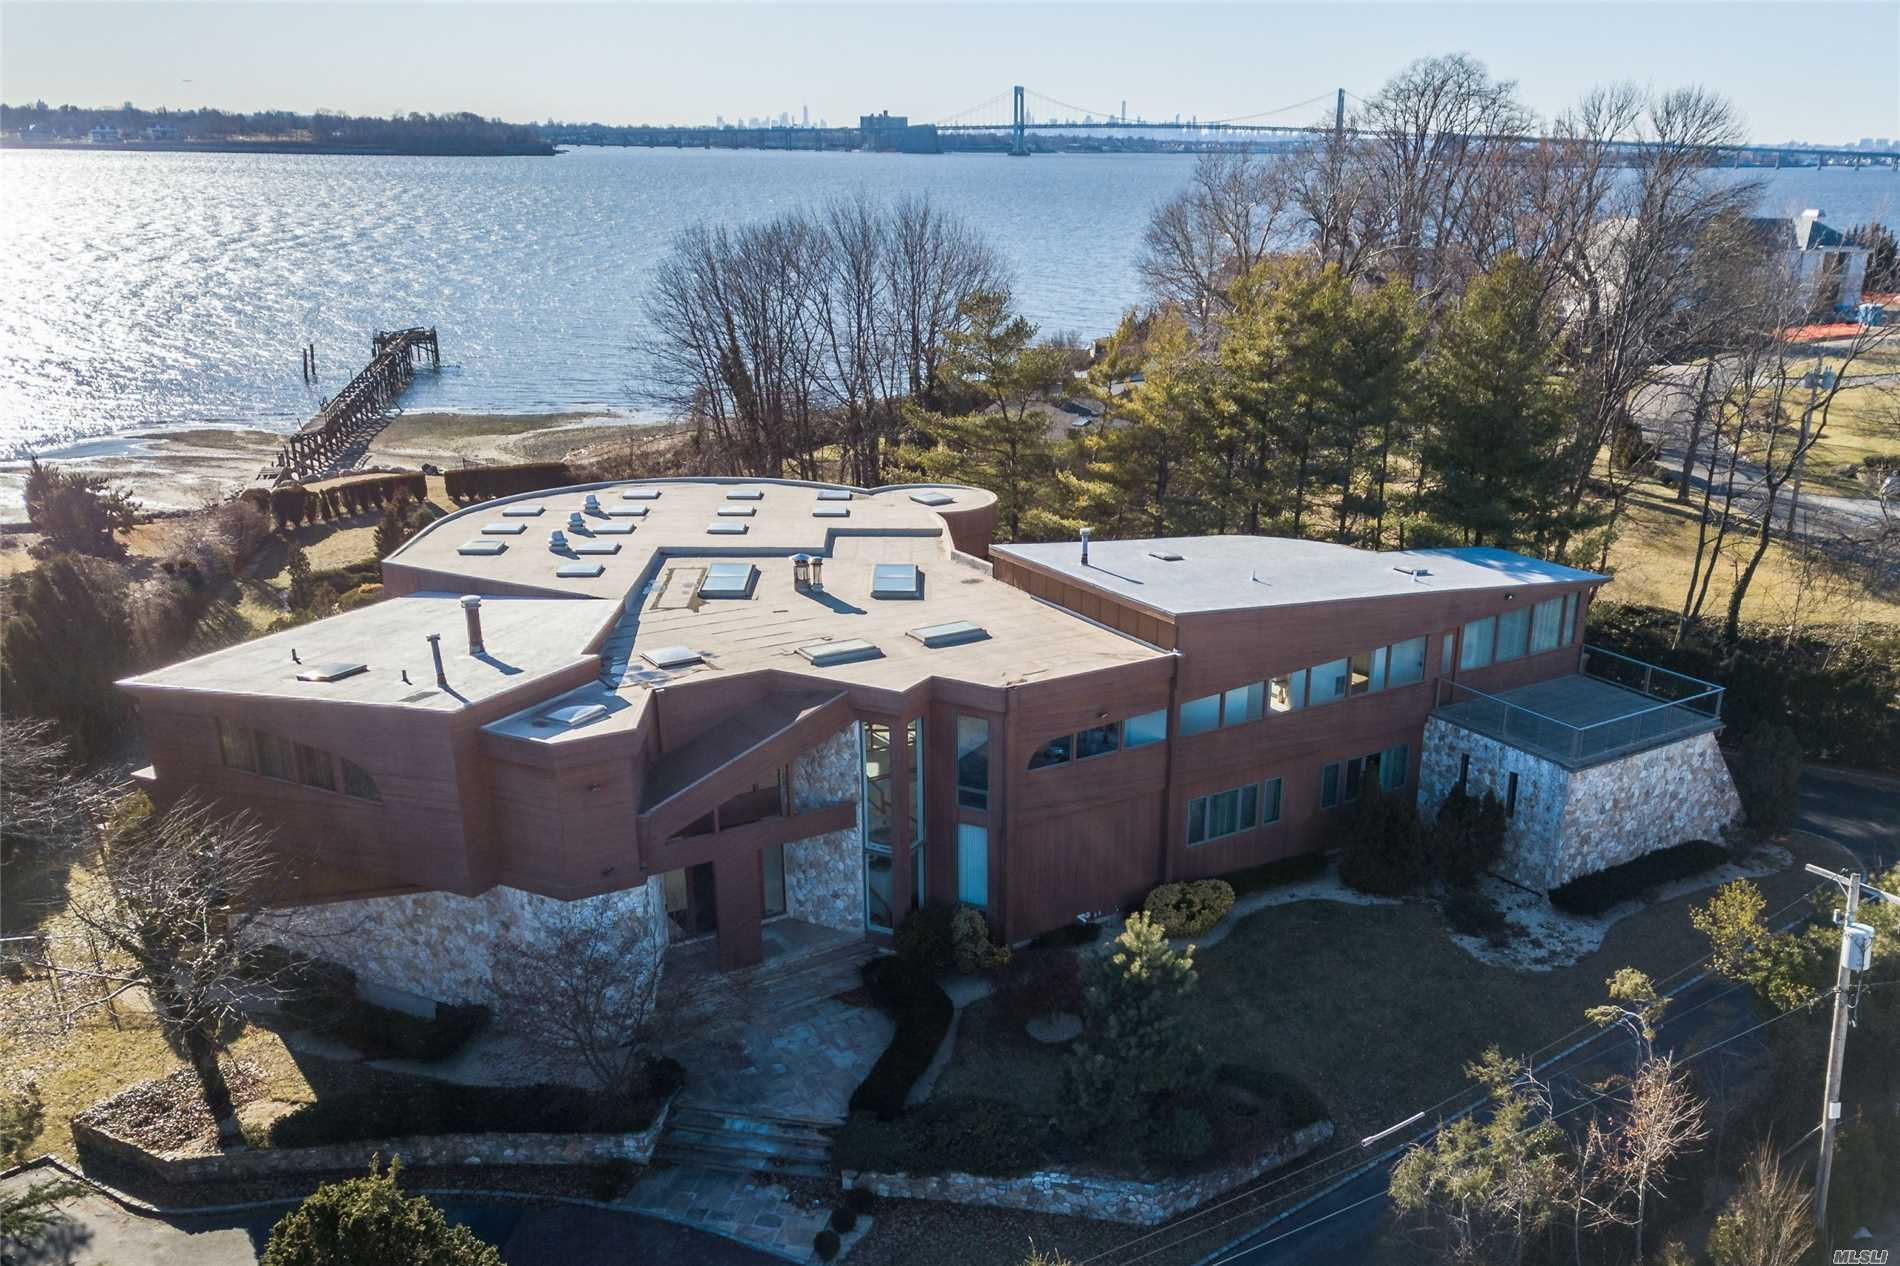 Stunning Waterfront Masterpiece With Breathtaking Views Of Manhattan Skyline & Bridges. Contemporary Boasting Spectacular Interiors, Soaring Ceilings, Indoor Pool And Wrap Around Floor To Ceiling Walls Of Glass Opening To Magnificent Resort Like Backyard With Man Made Lazy River Winding Through Japanese Gardens, Jaccuzi & Waterfall & Access To A Semi-Private Dock!